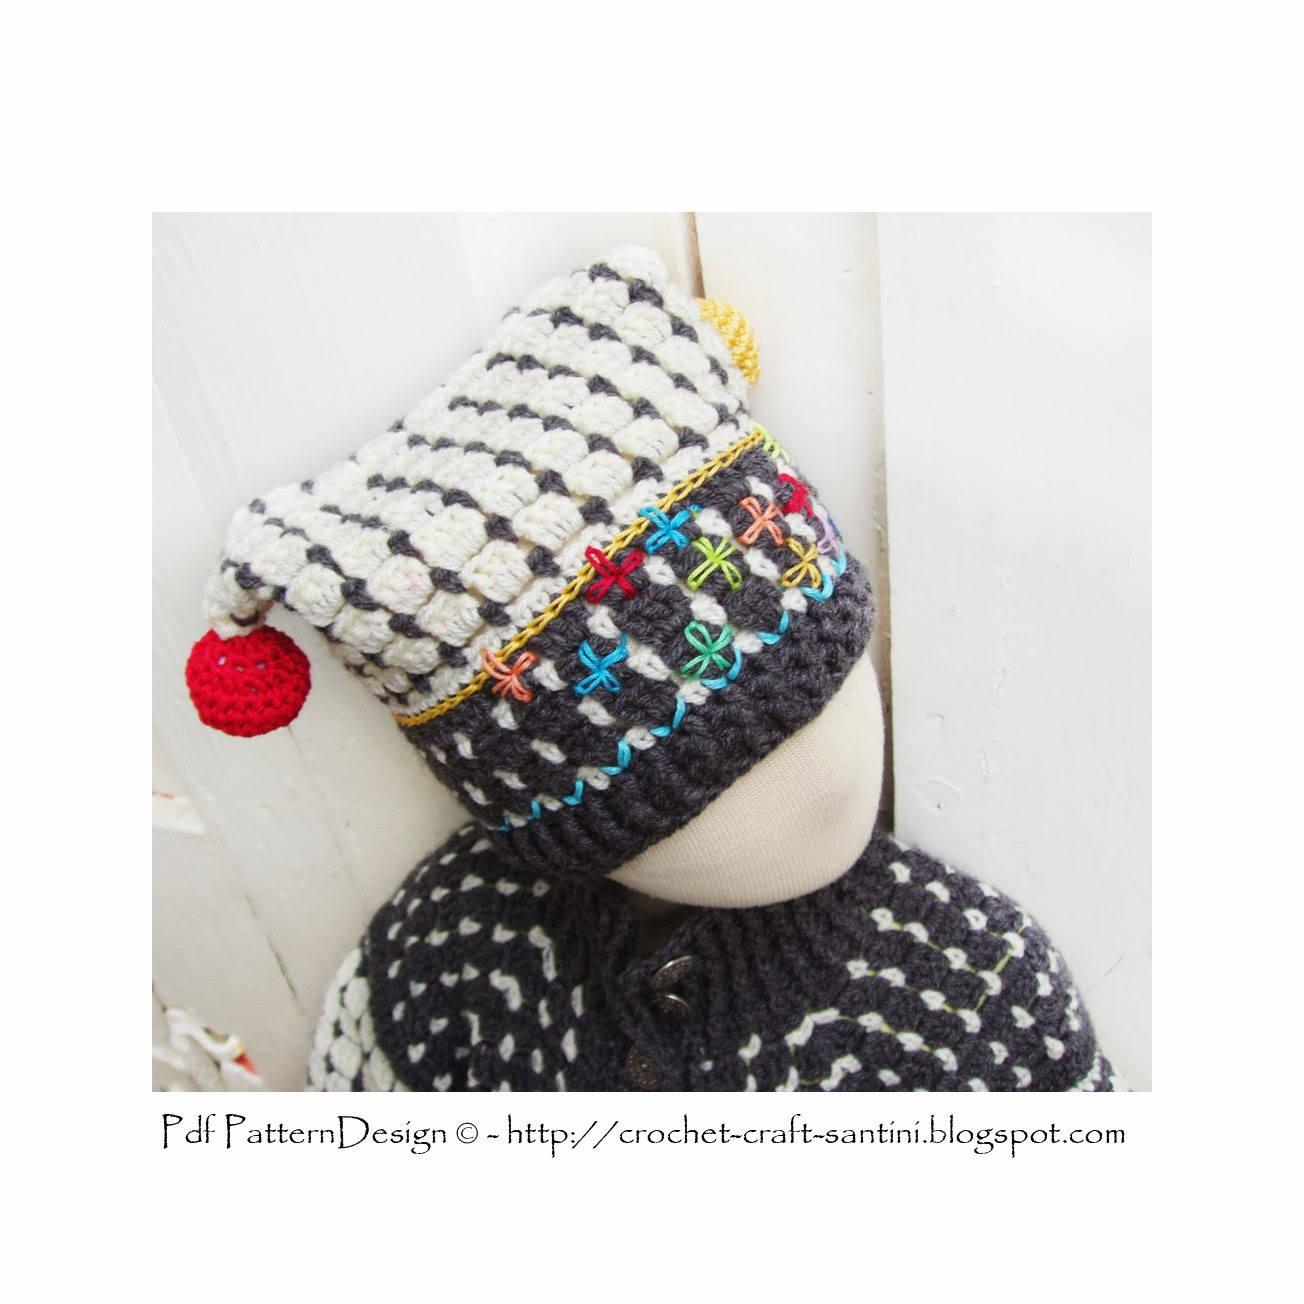 THE FAIR ISLE CROCHET HAT WITH BALLS, ALL SIZES FROM 2 YEARS - ADULT!